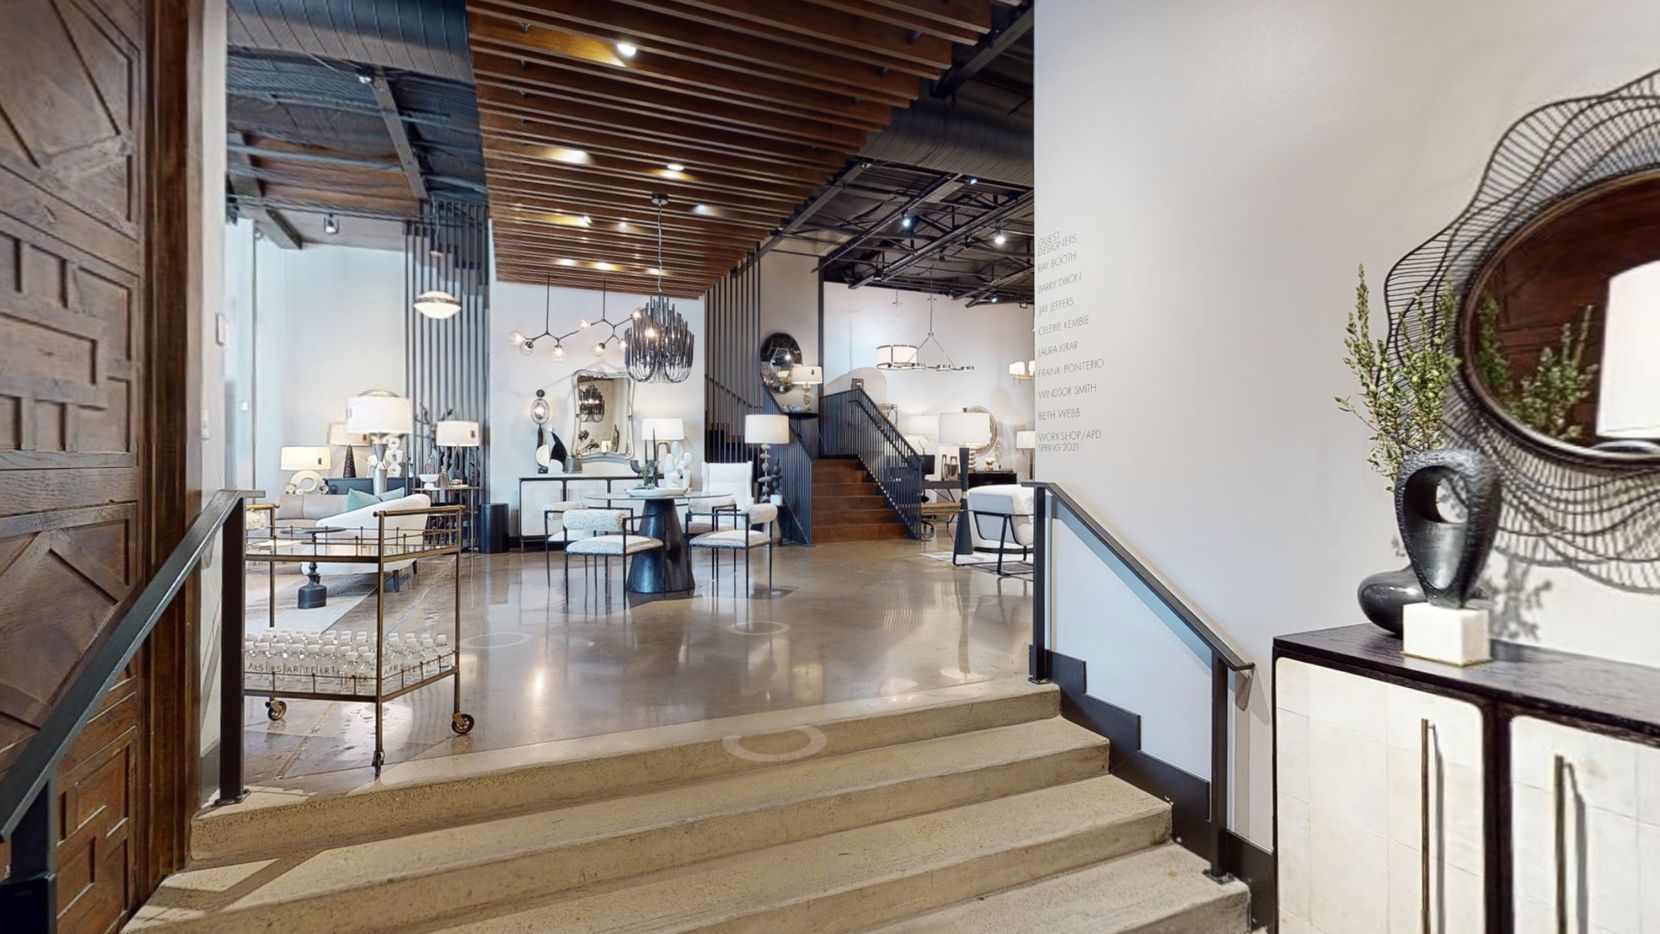 Arteriors has its flagship showroom in Dallas' Design District.